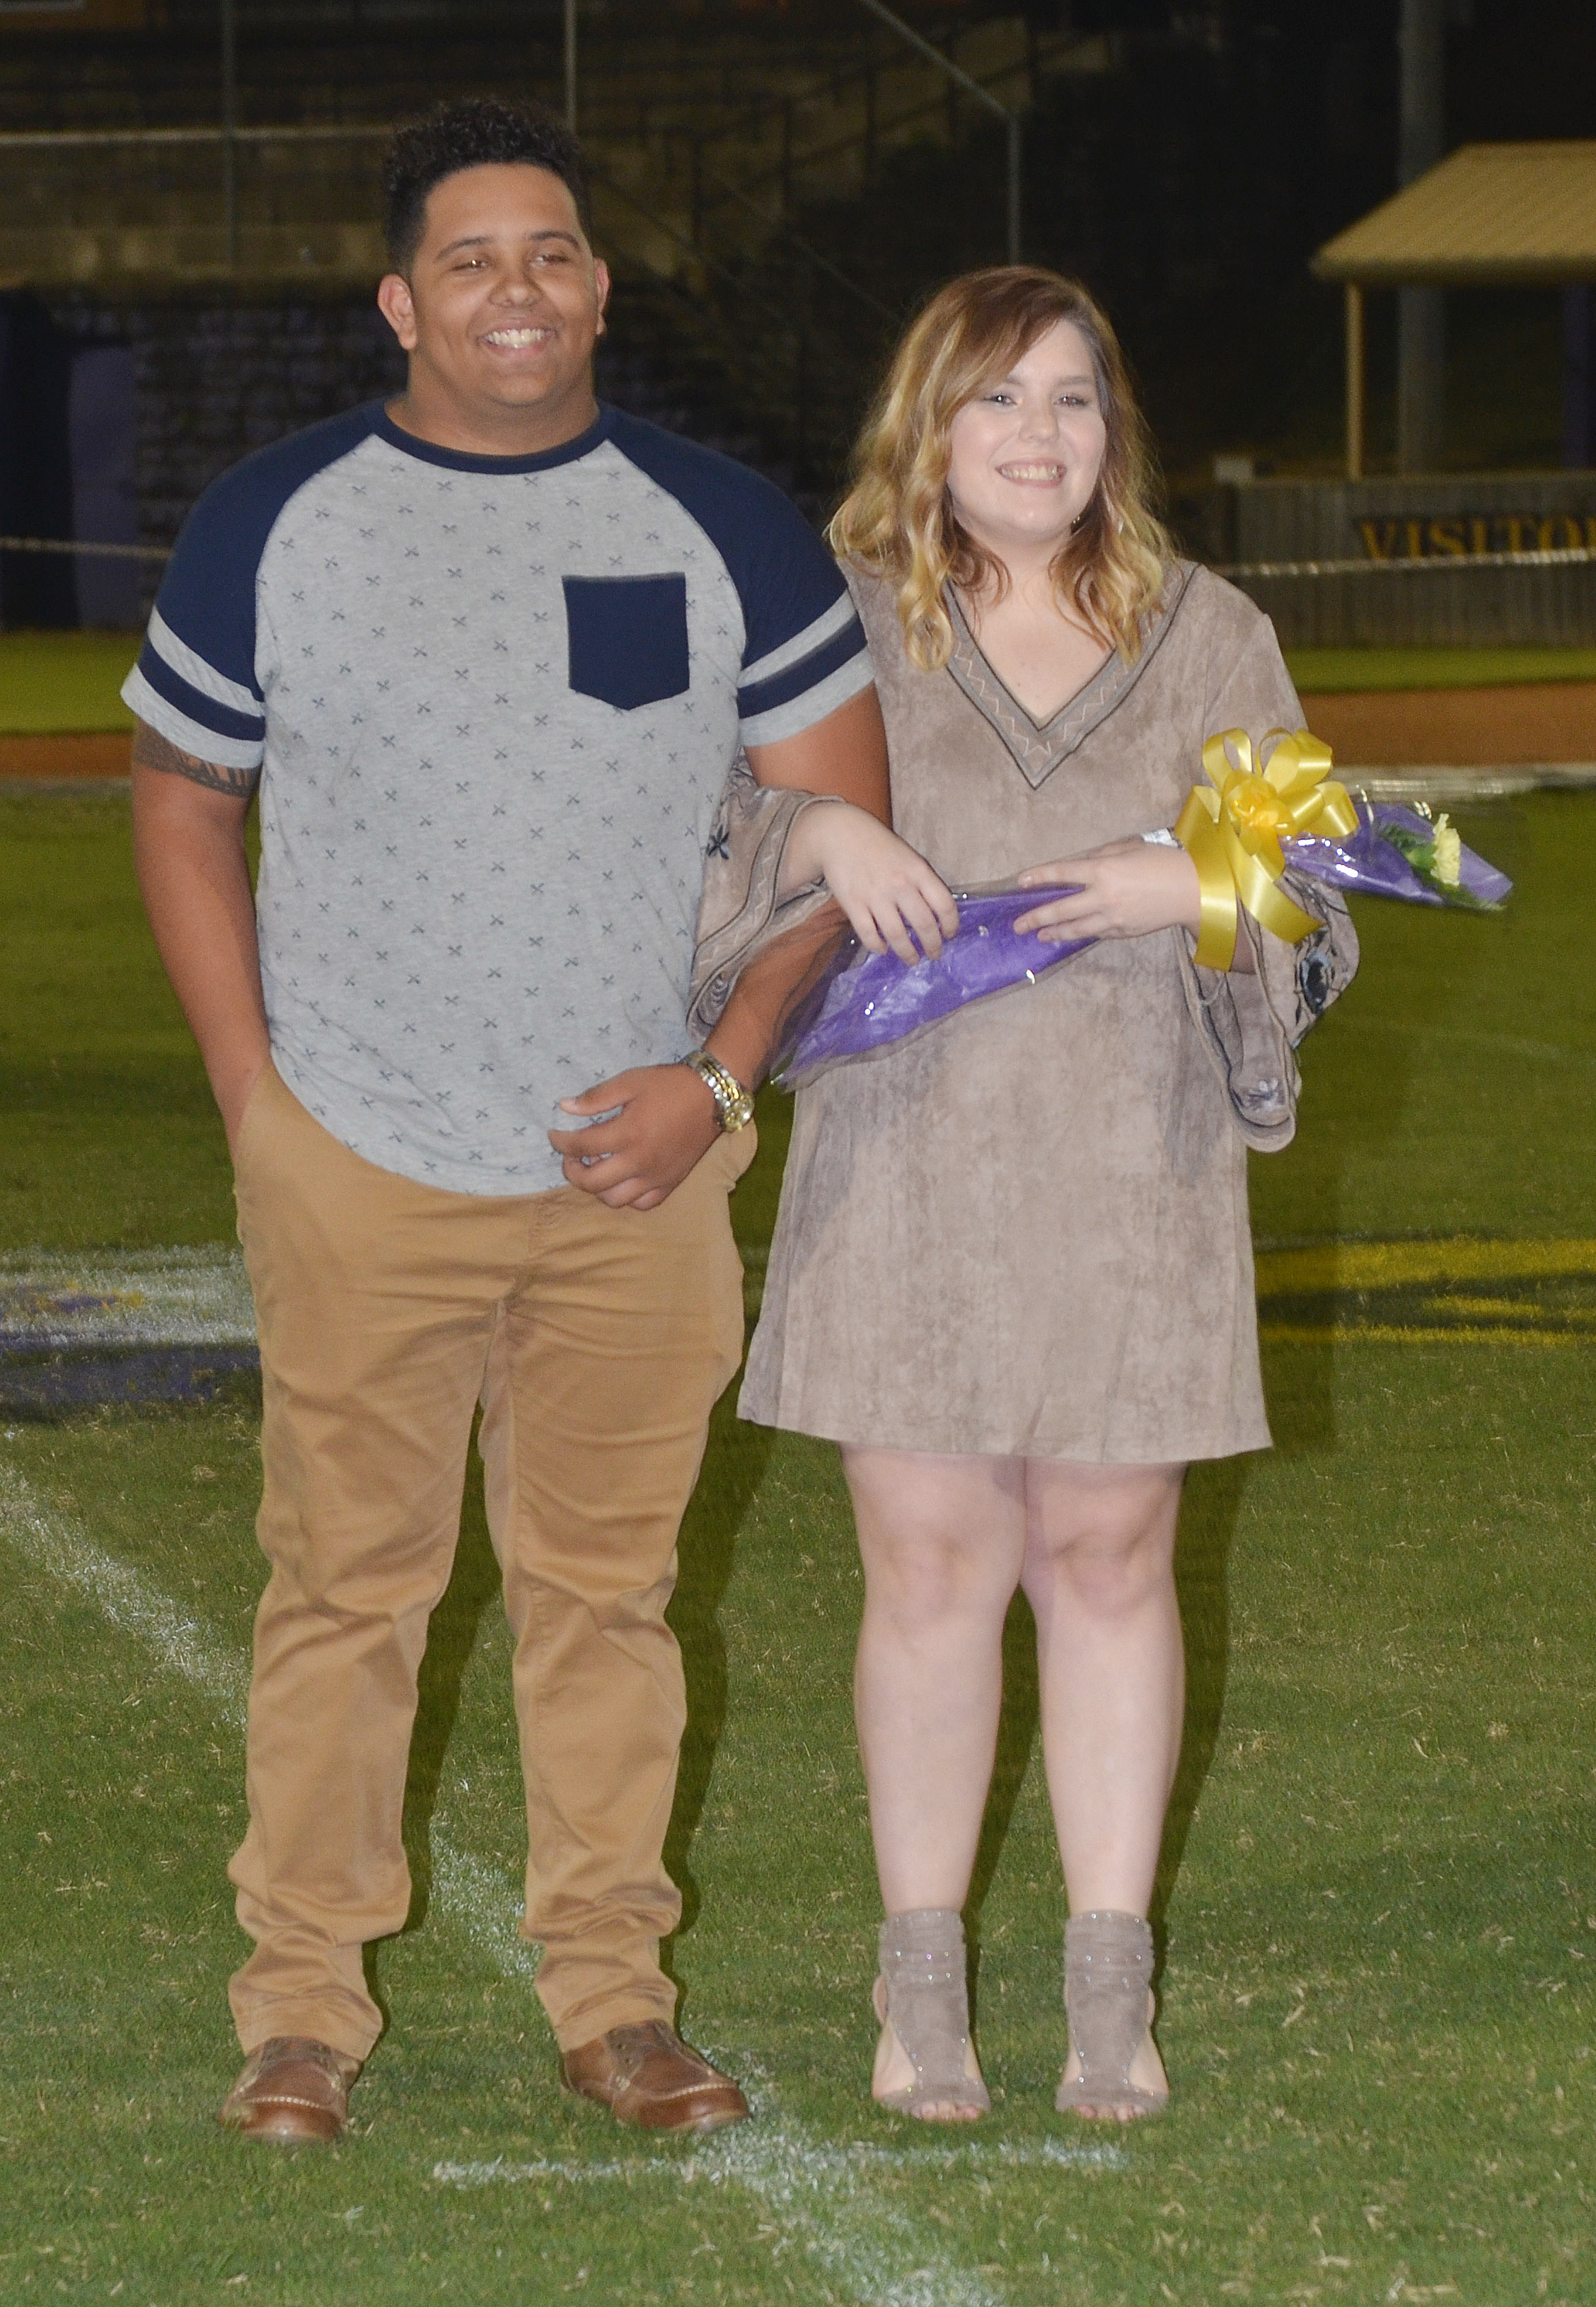 Adrian Cravens and Sara Farmer represent the senior class.